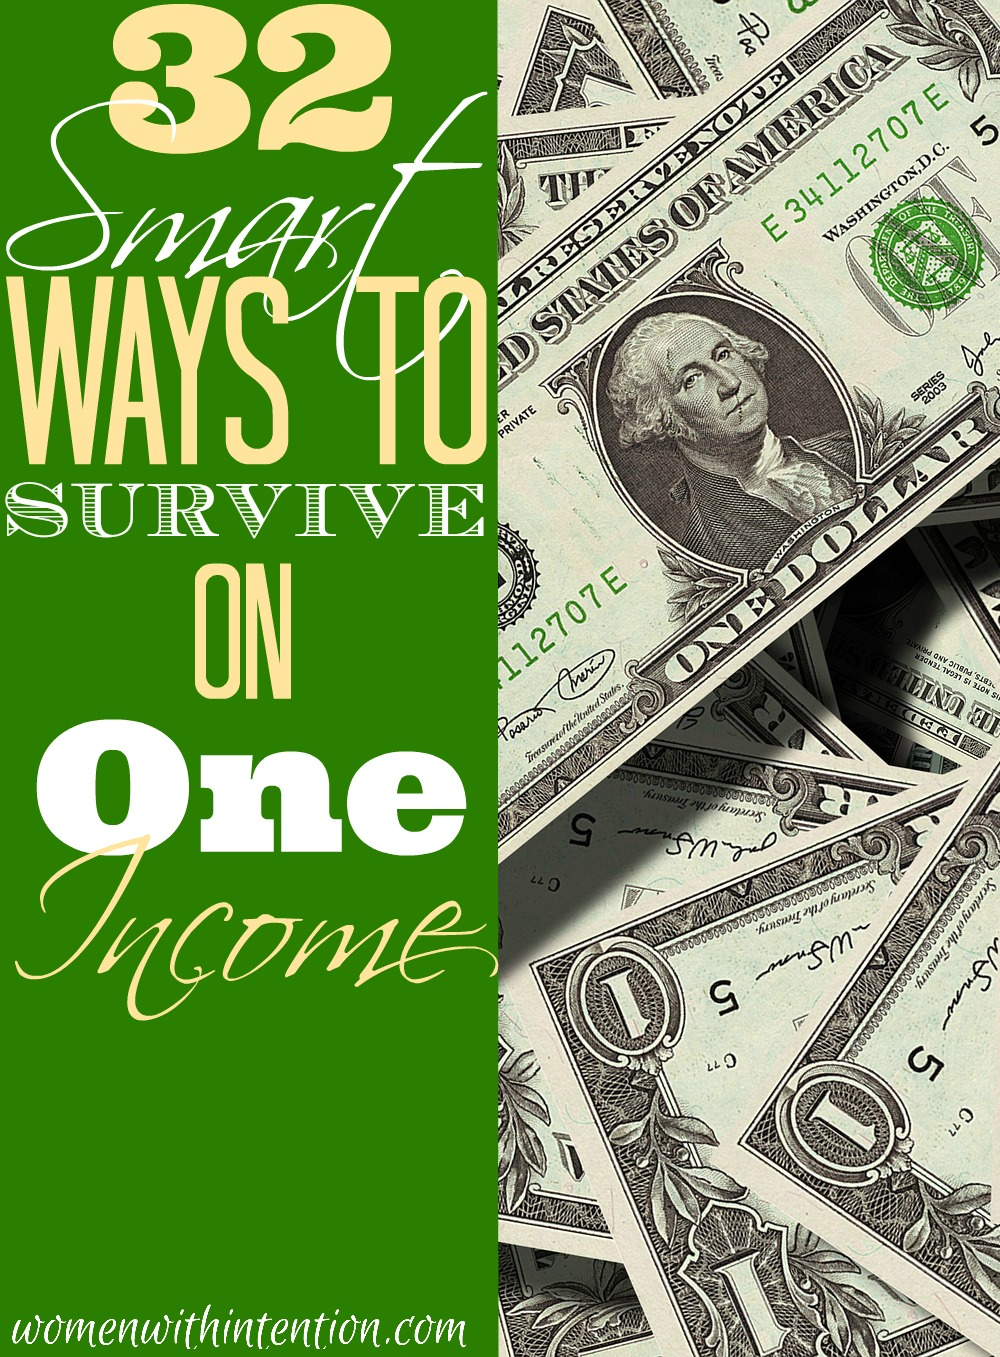 Do you yearn to be a SAHM? Did you or your spouse find yourself unemployed or underemployed and are struggling to make ends meet? Whether you are wanting to live on one income or are doing it because of other circumstances, it can be difficult to survive financially. However, it is possible!